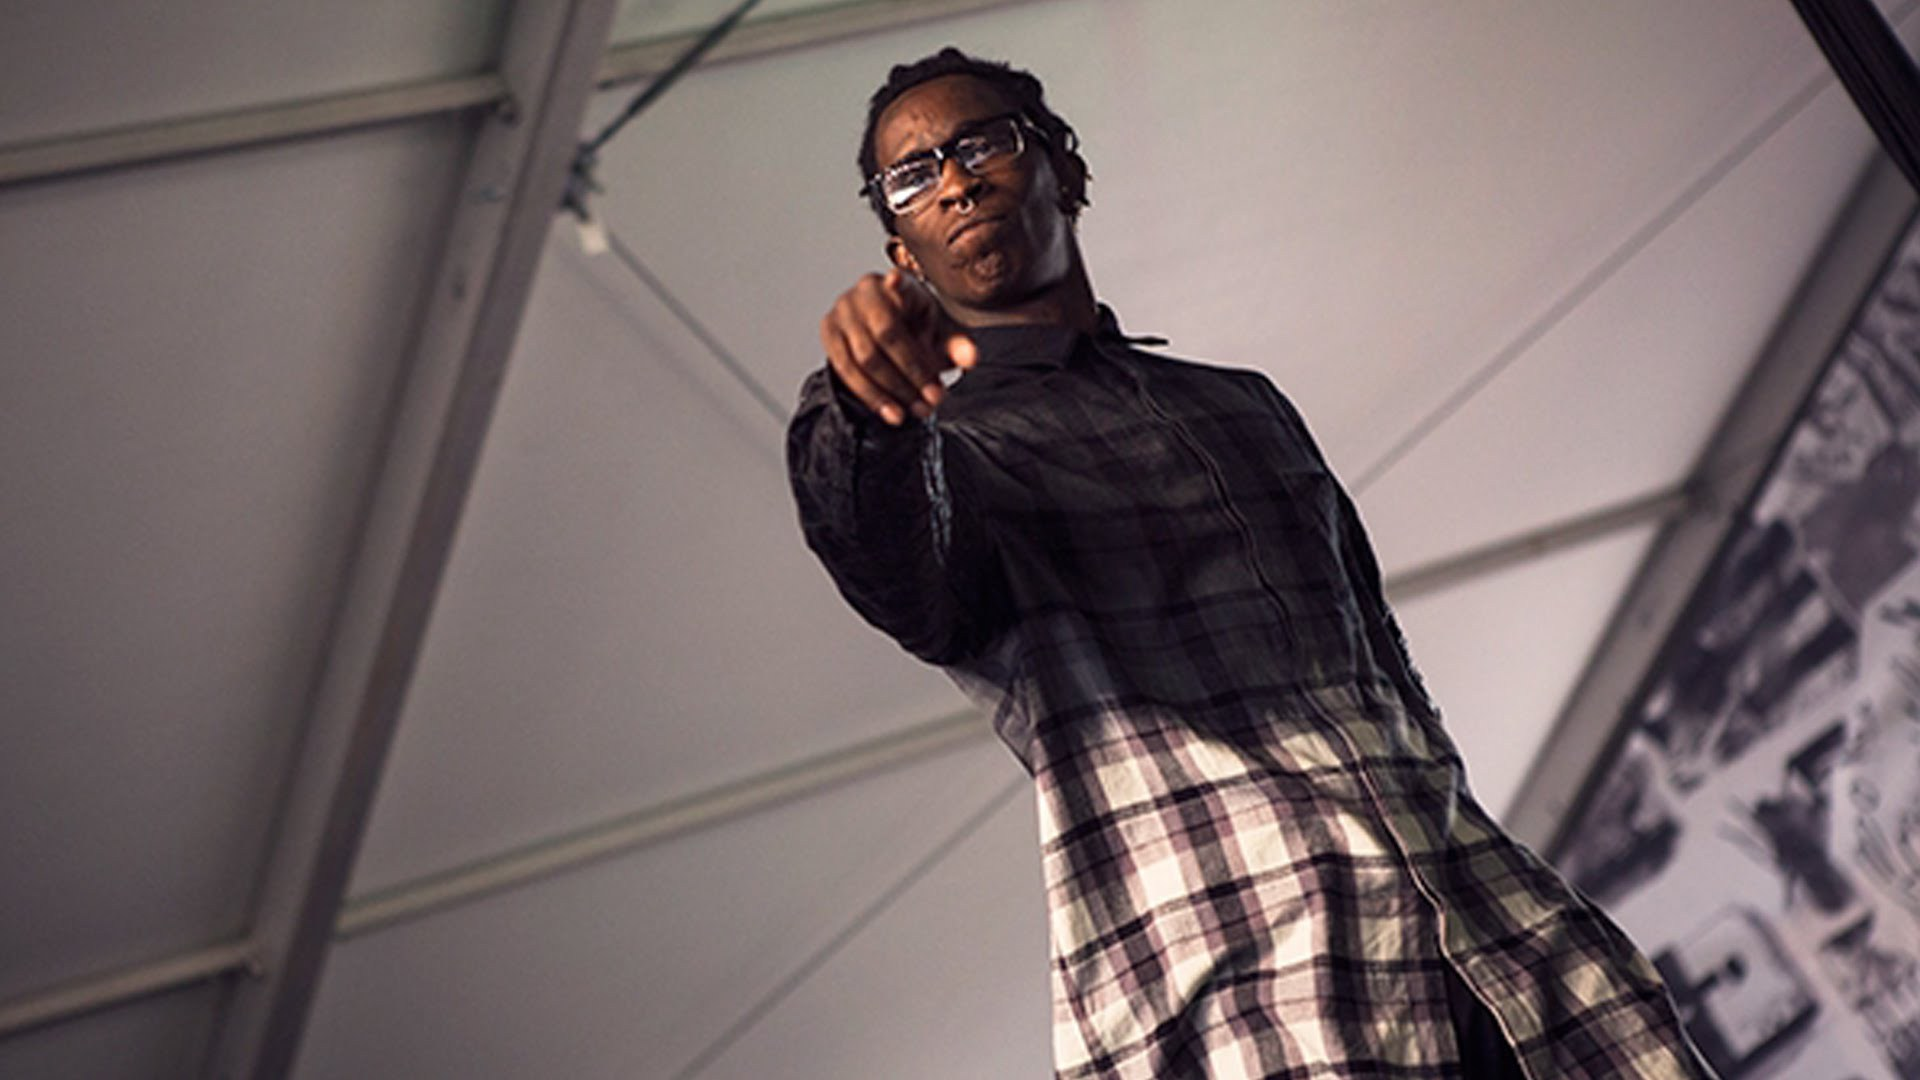 Free Download Young Thug Wallpapers Images Photos Pictures